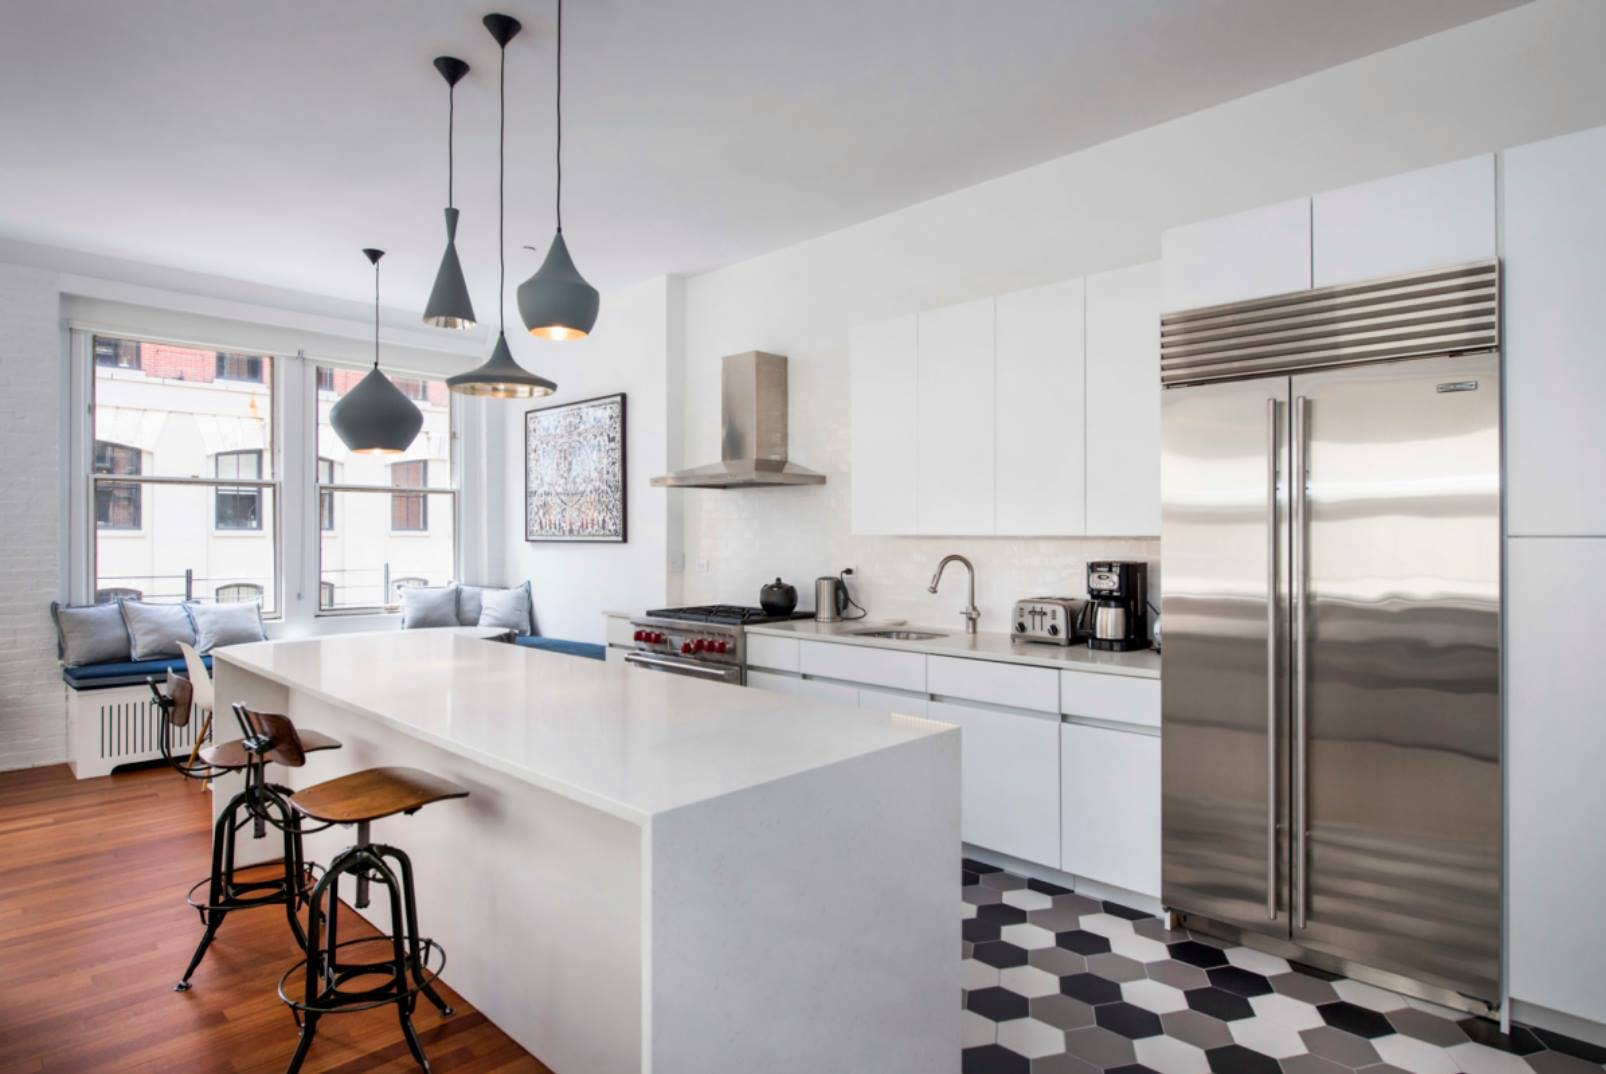 MyHome Design & Remodeling Discusses Ideas for Small Kitchen ...